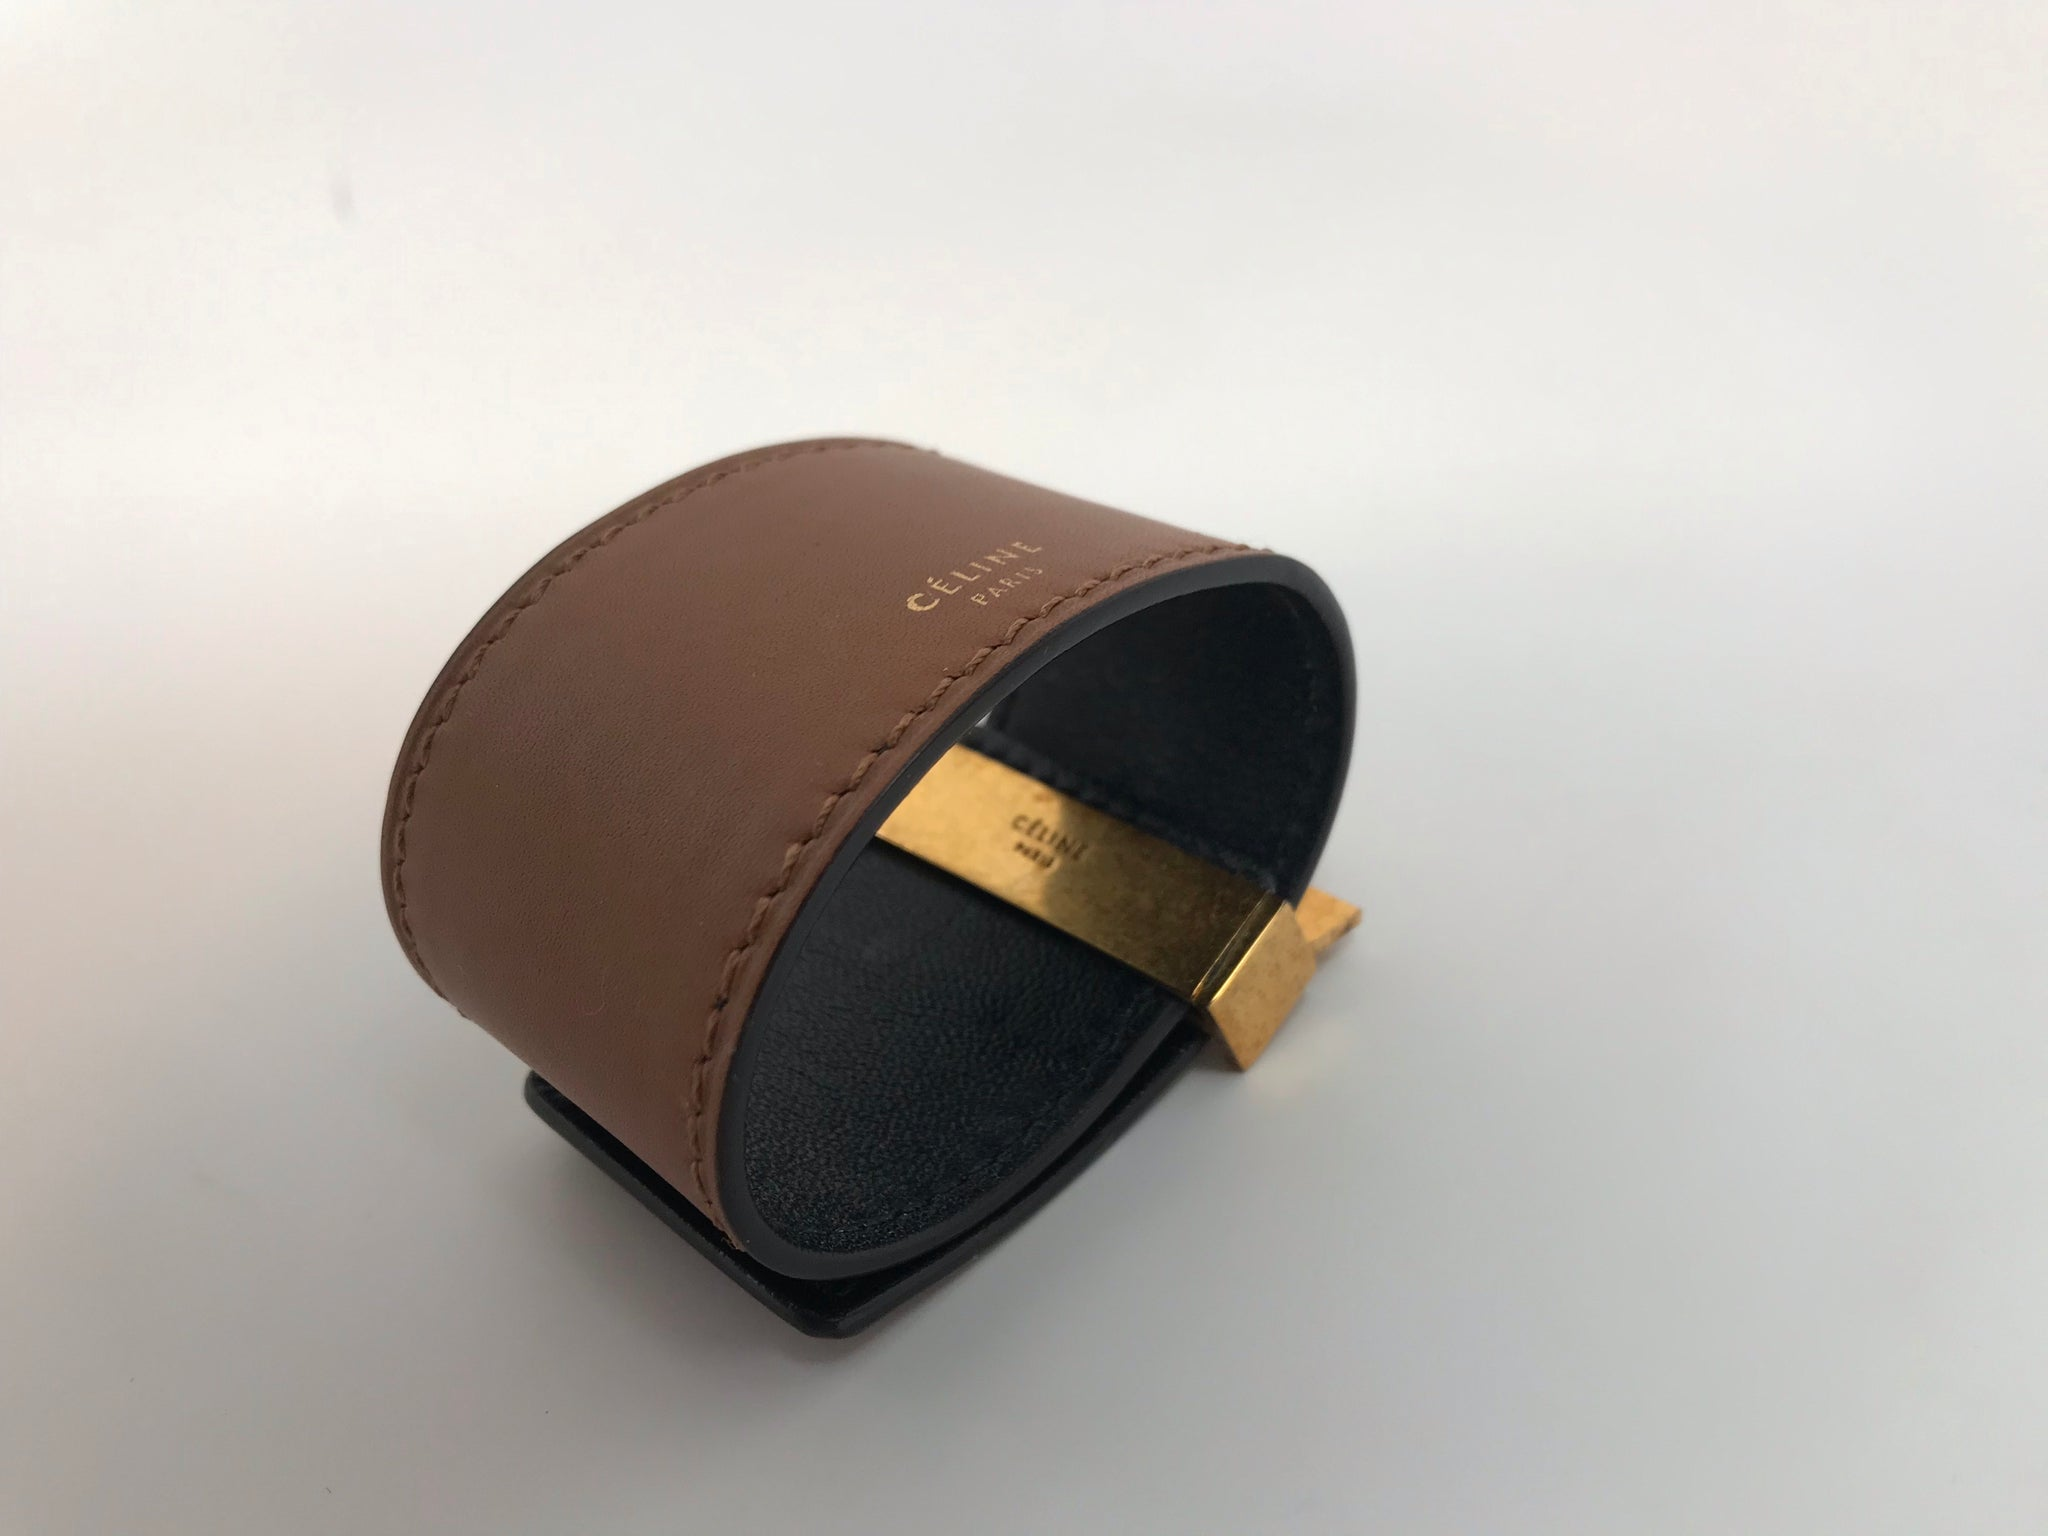 CELINE BROWN LEATHER CUFF BRACELET - SMALL